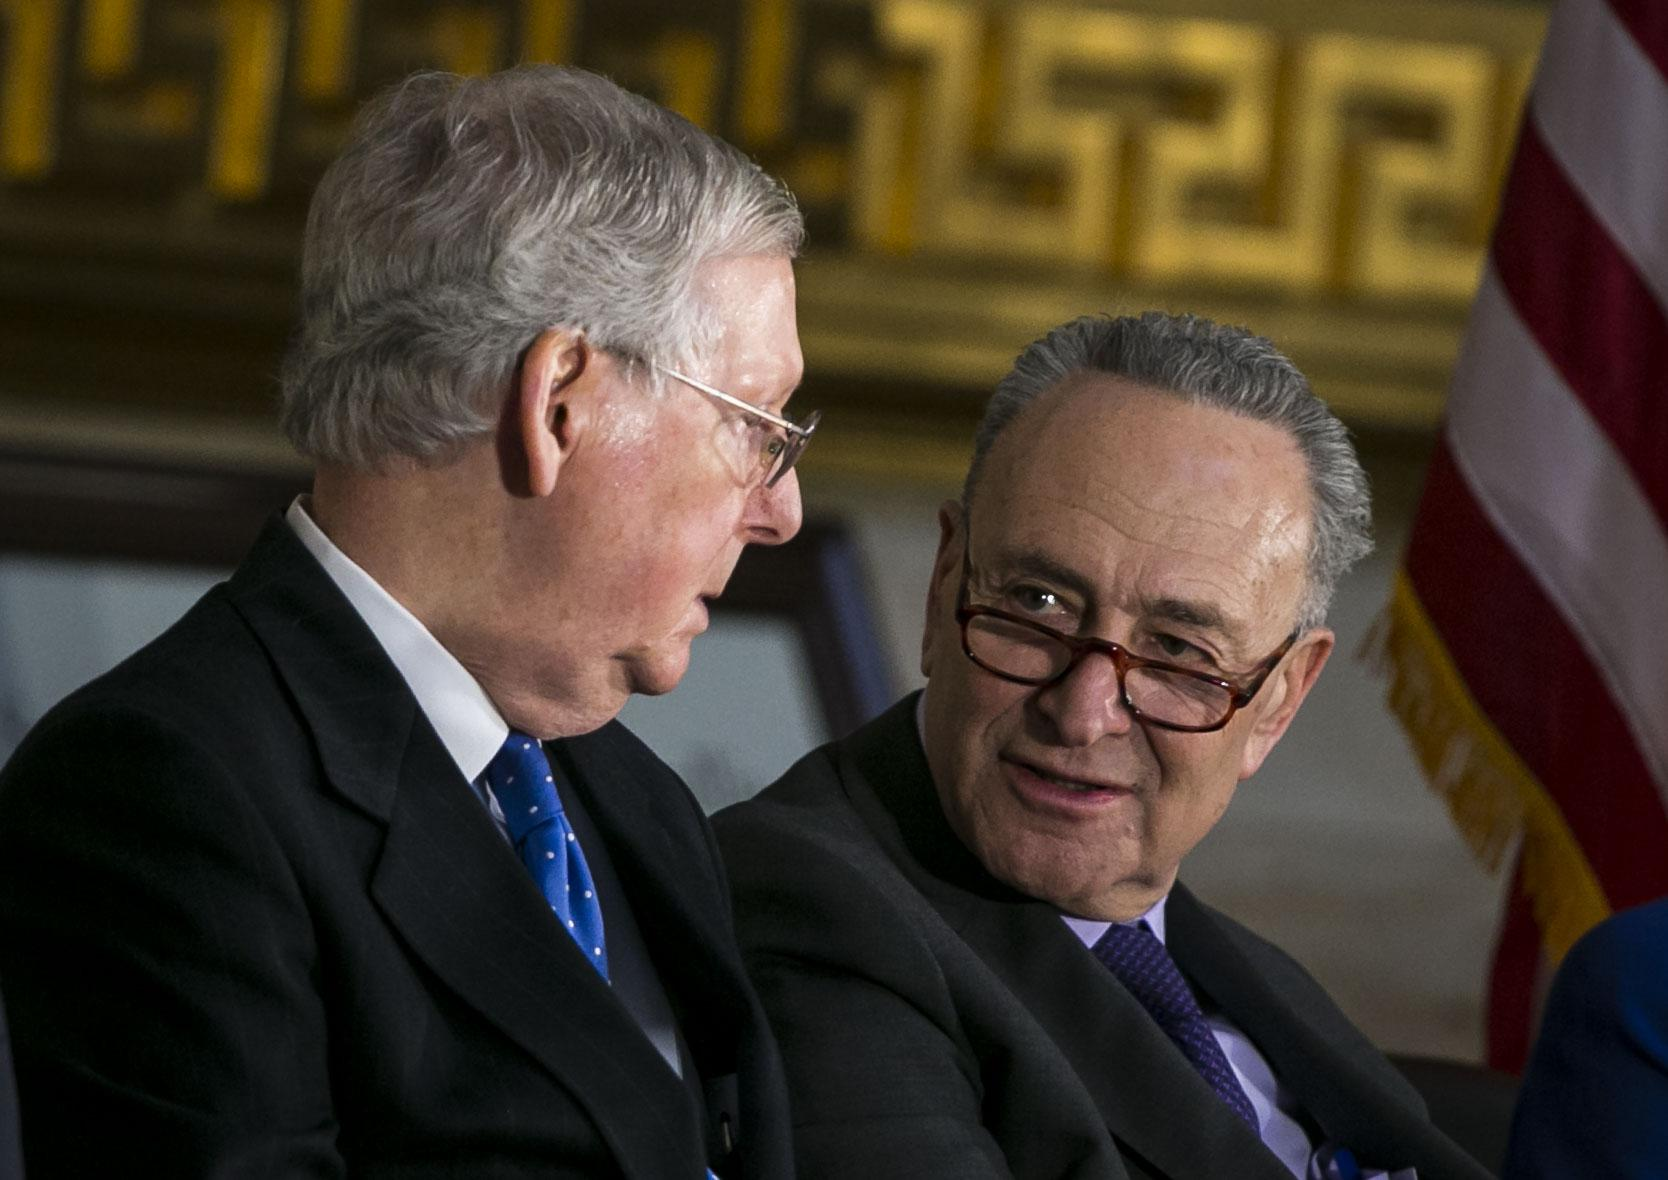 Senate Majority Leader Mitch McConnell and Senate Minority Leader Chuck Schumer talk at the U.S. Capitol on Wednesday.